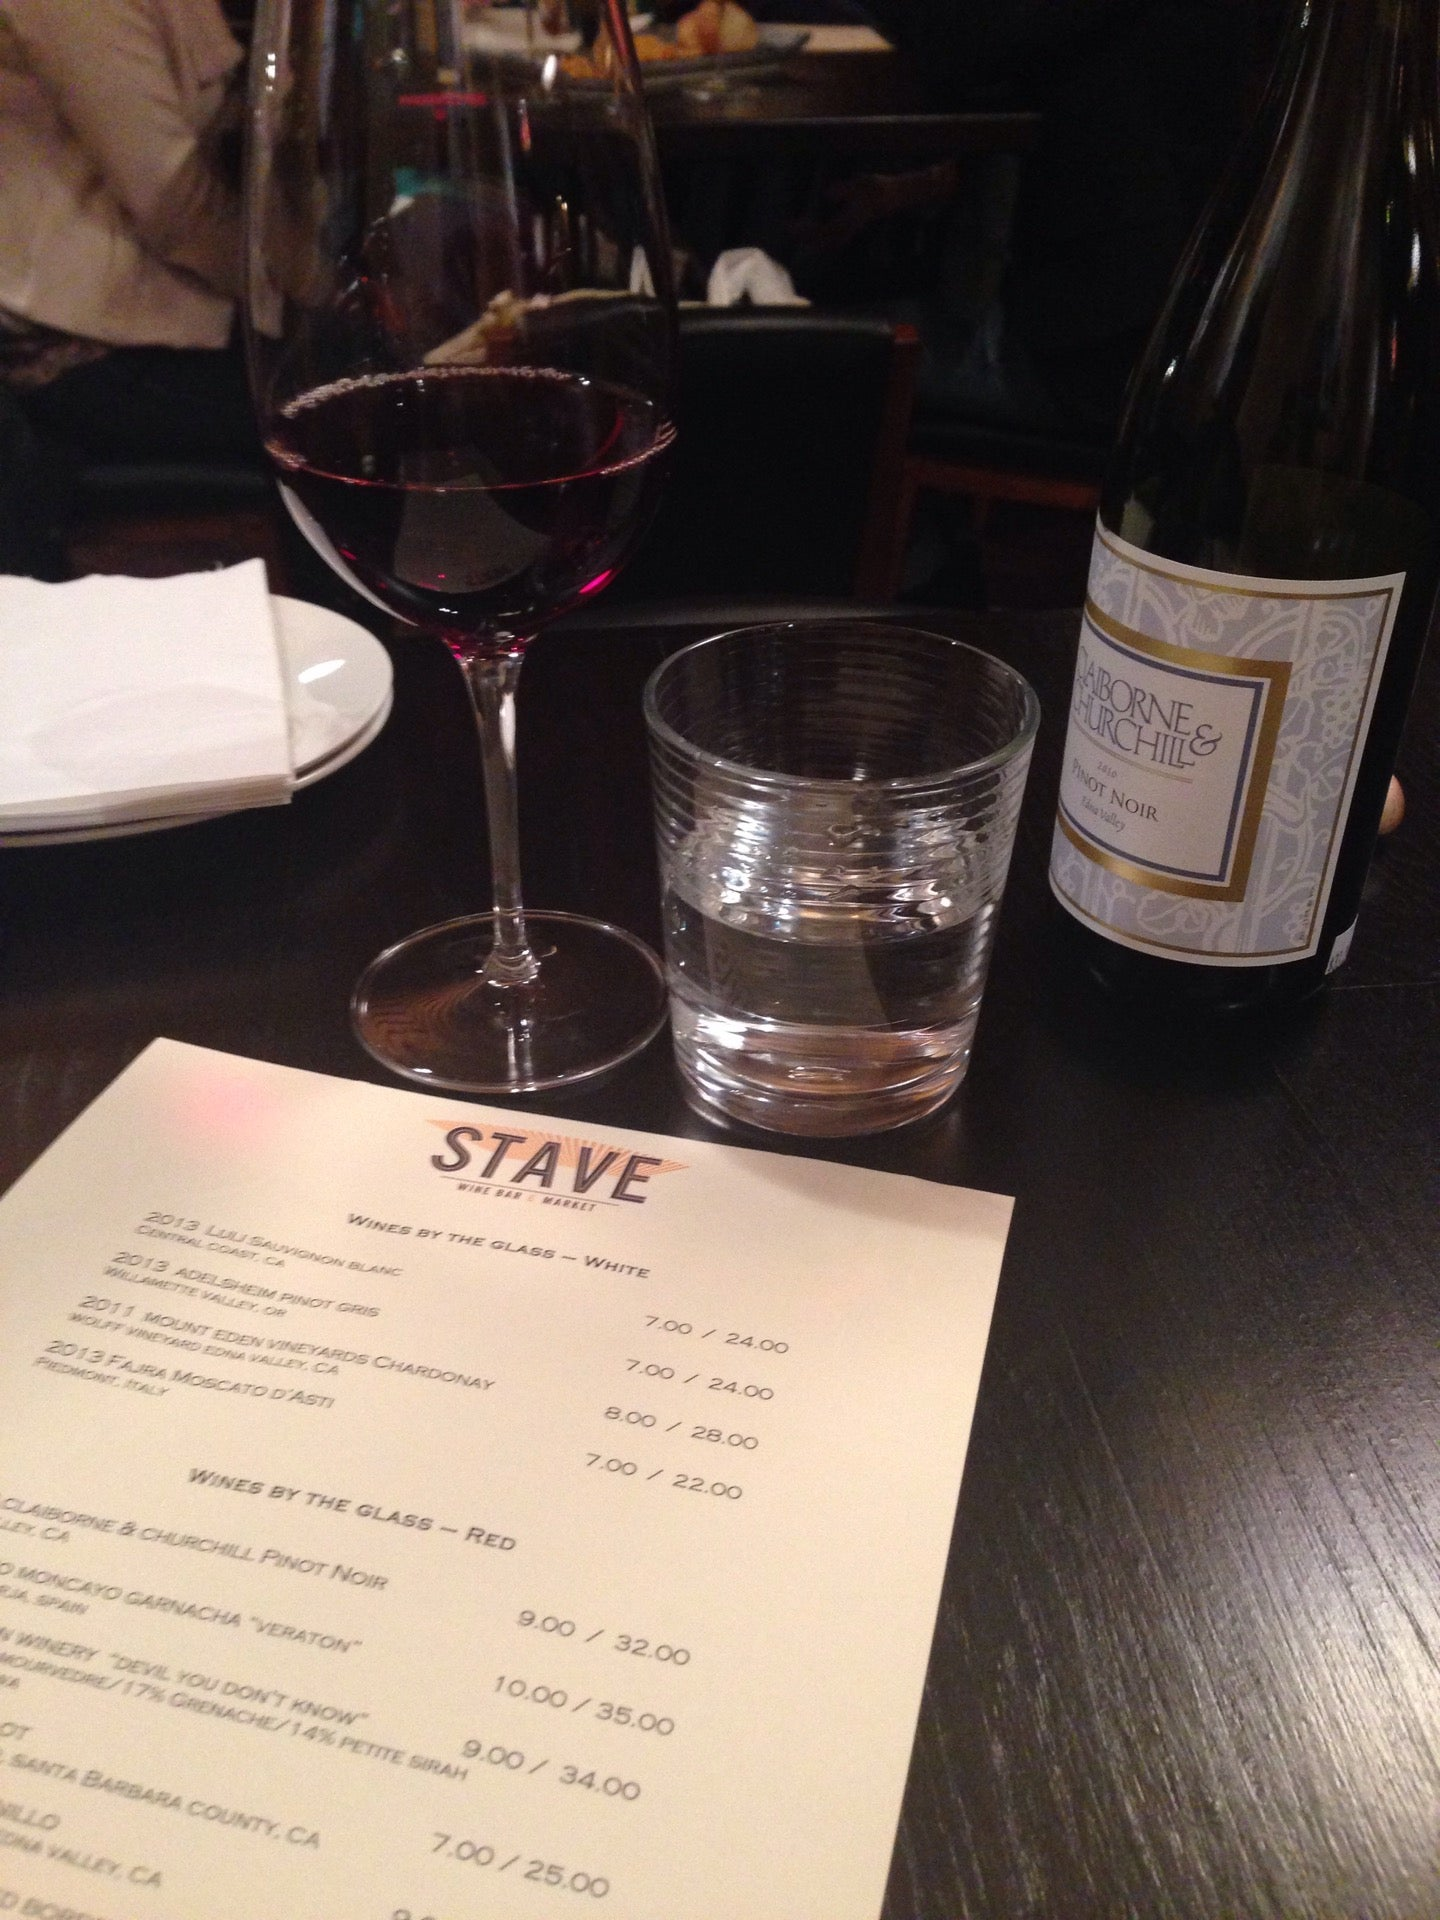 Stave Wine Bar & Market